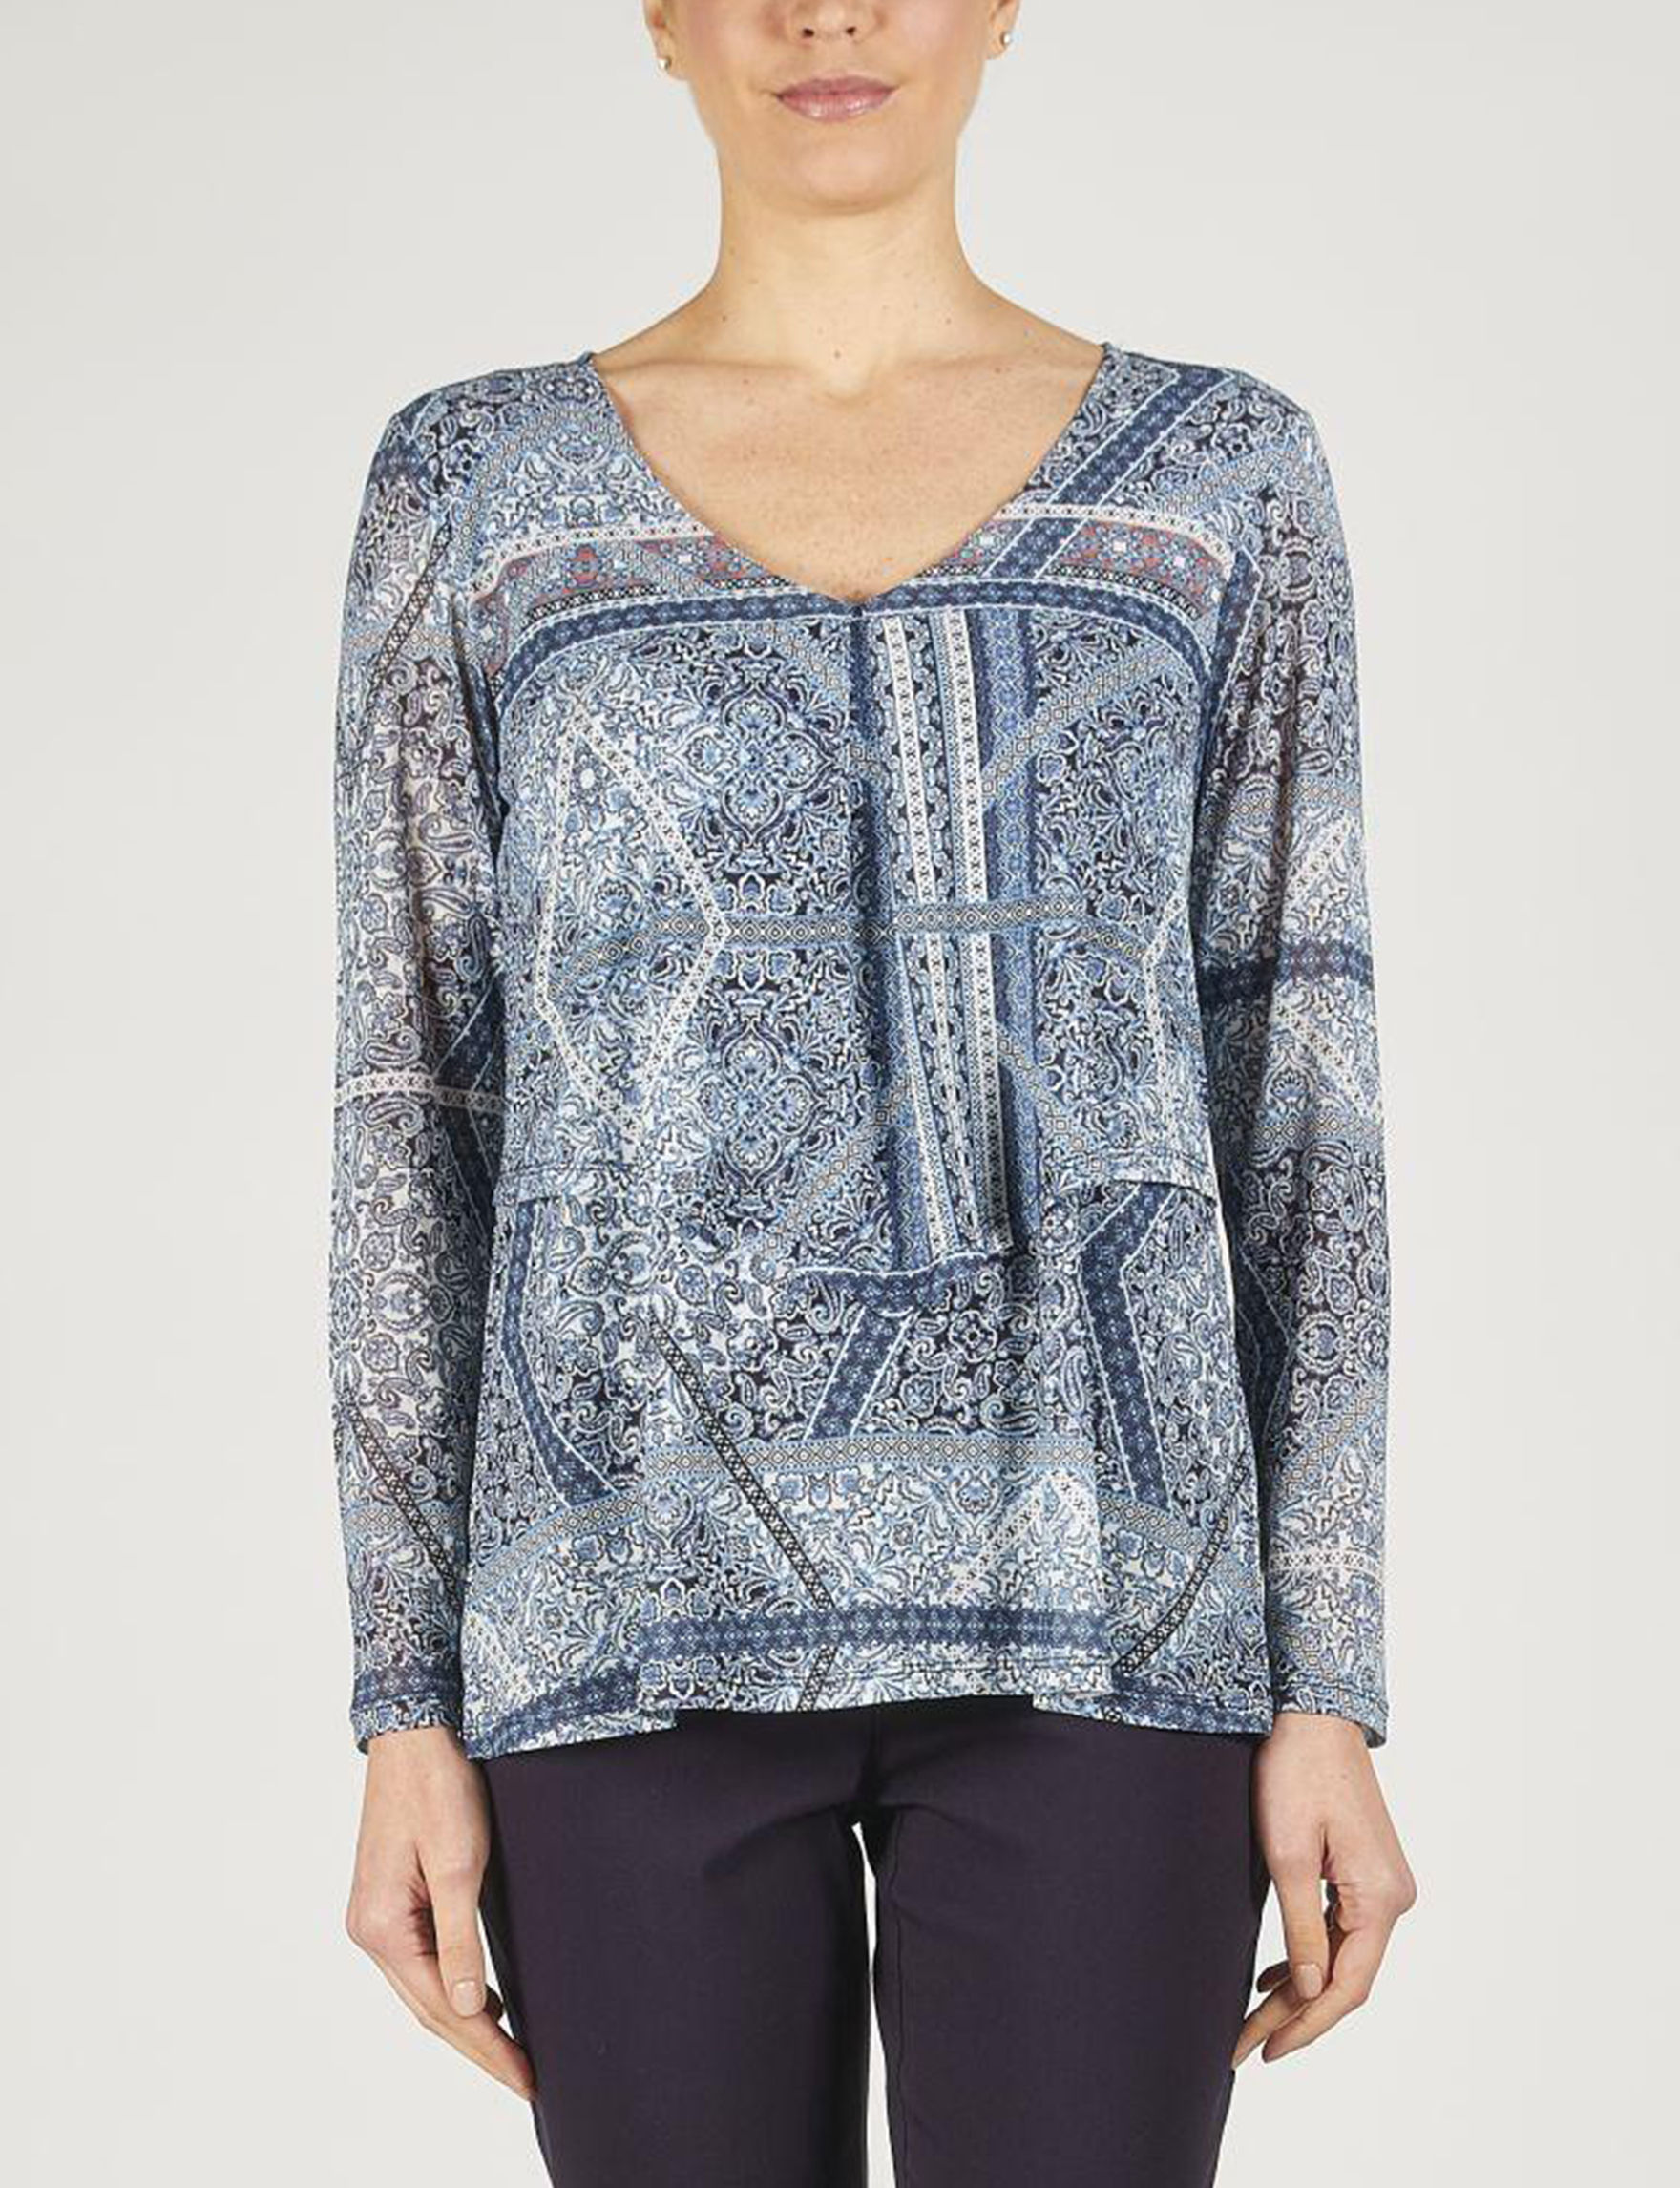 Skyes The Limit Blue / Multi Shirts & Blouses